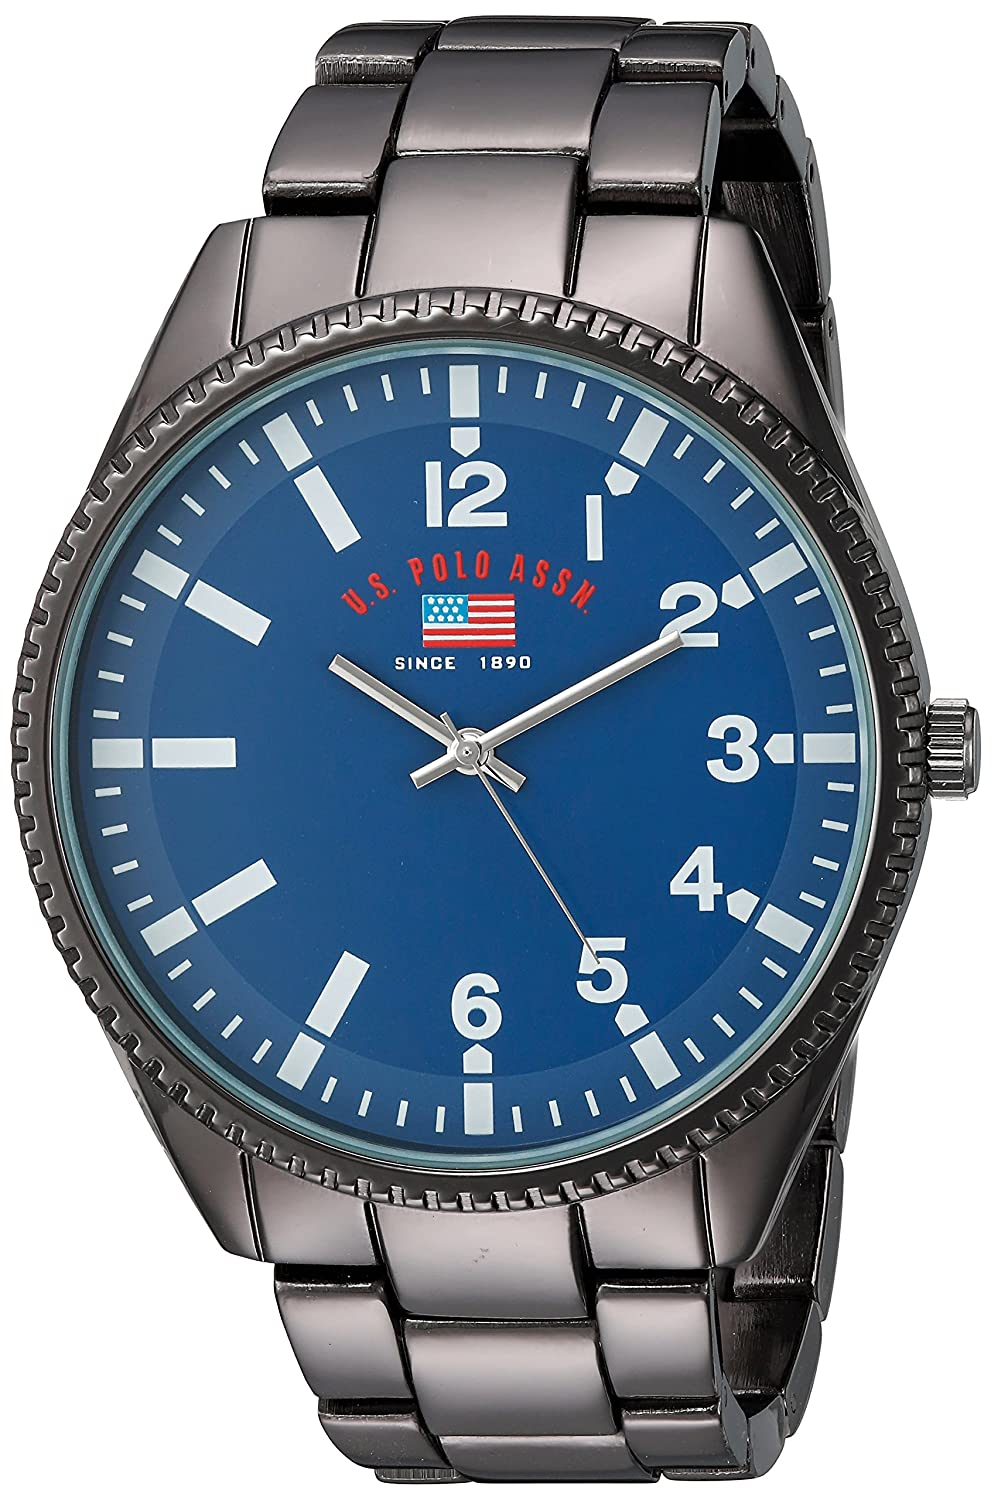 Reloj - U.S. Polo Assn. - para - US8641: Amazon.es: Relojes